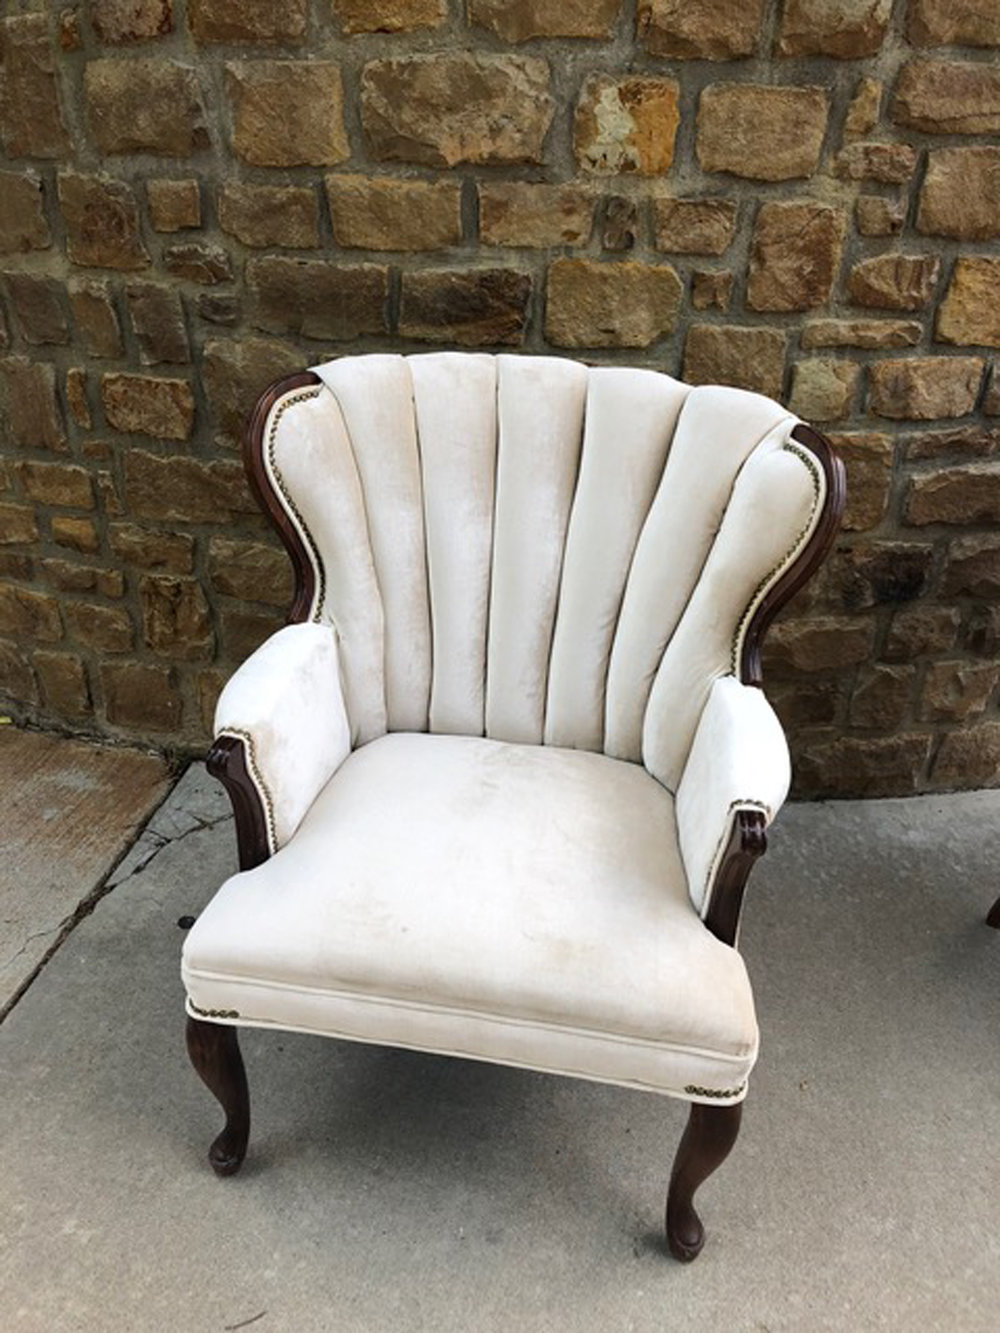 Savannah Chair~$35